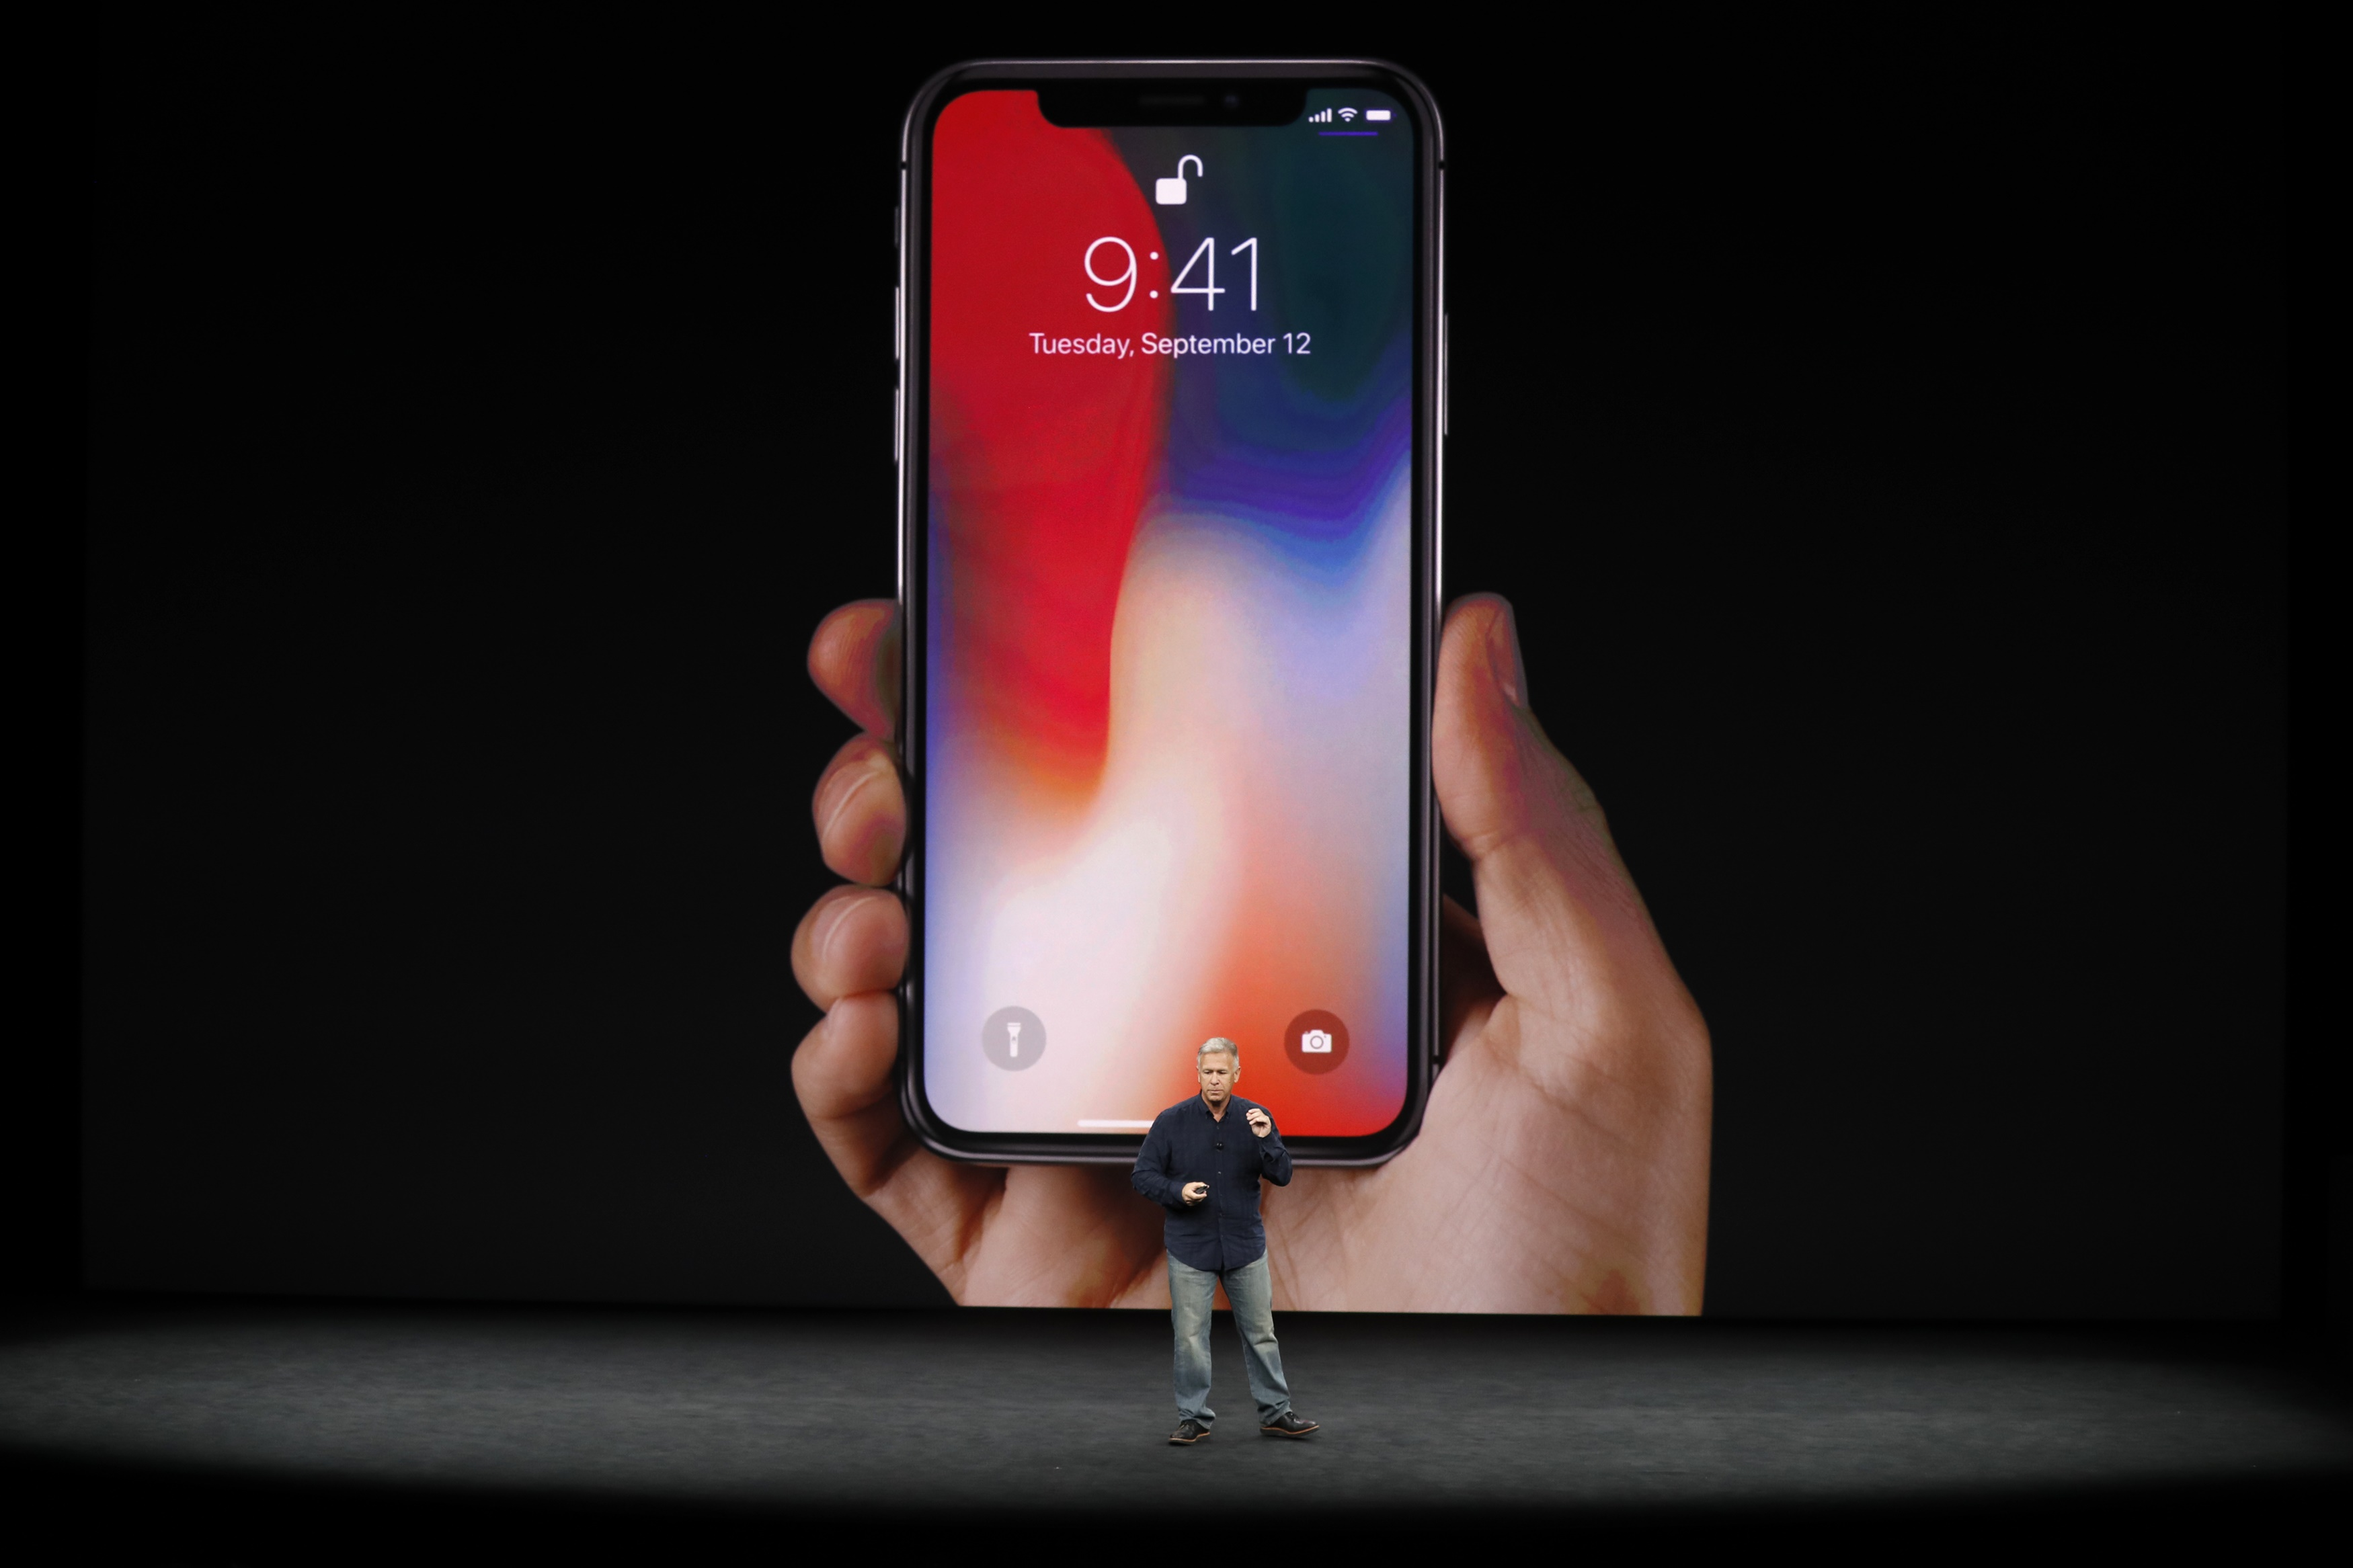 REFILE - CORRECTING TYPO - Apple Senior Vice President of Worldwide Marketing, Phil Schiller, introduces the iPhone X during a launch event in Cupertino, California, U.S. September 12, 2017. REUTERS/Stephen Lam